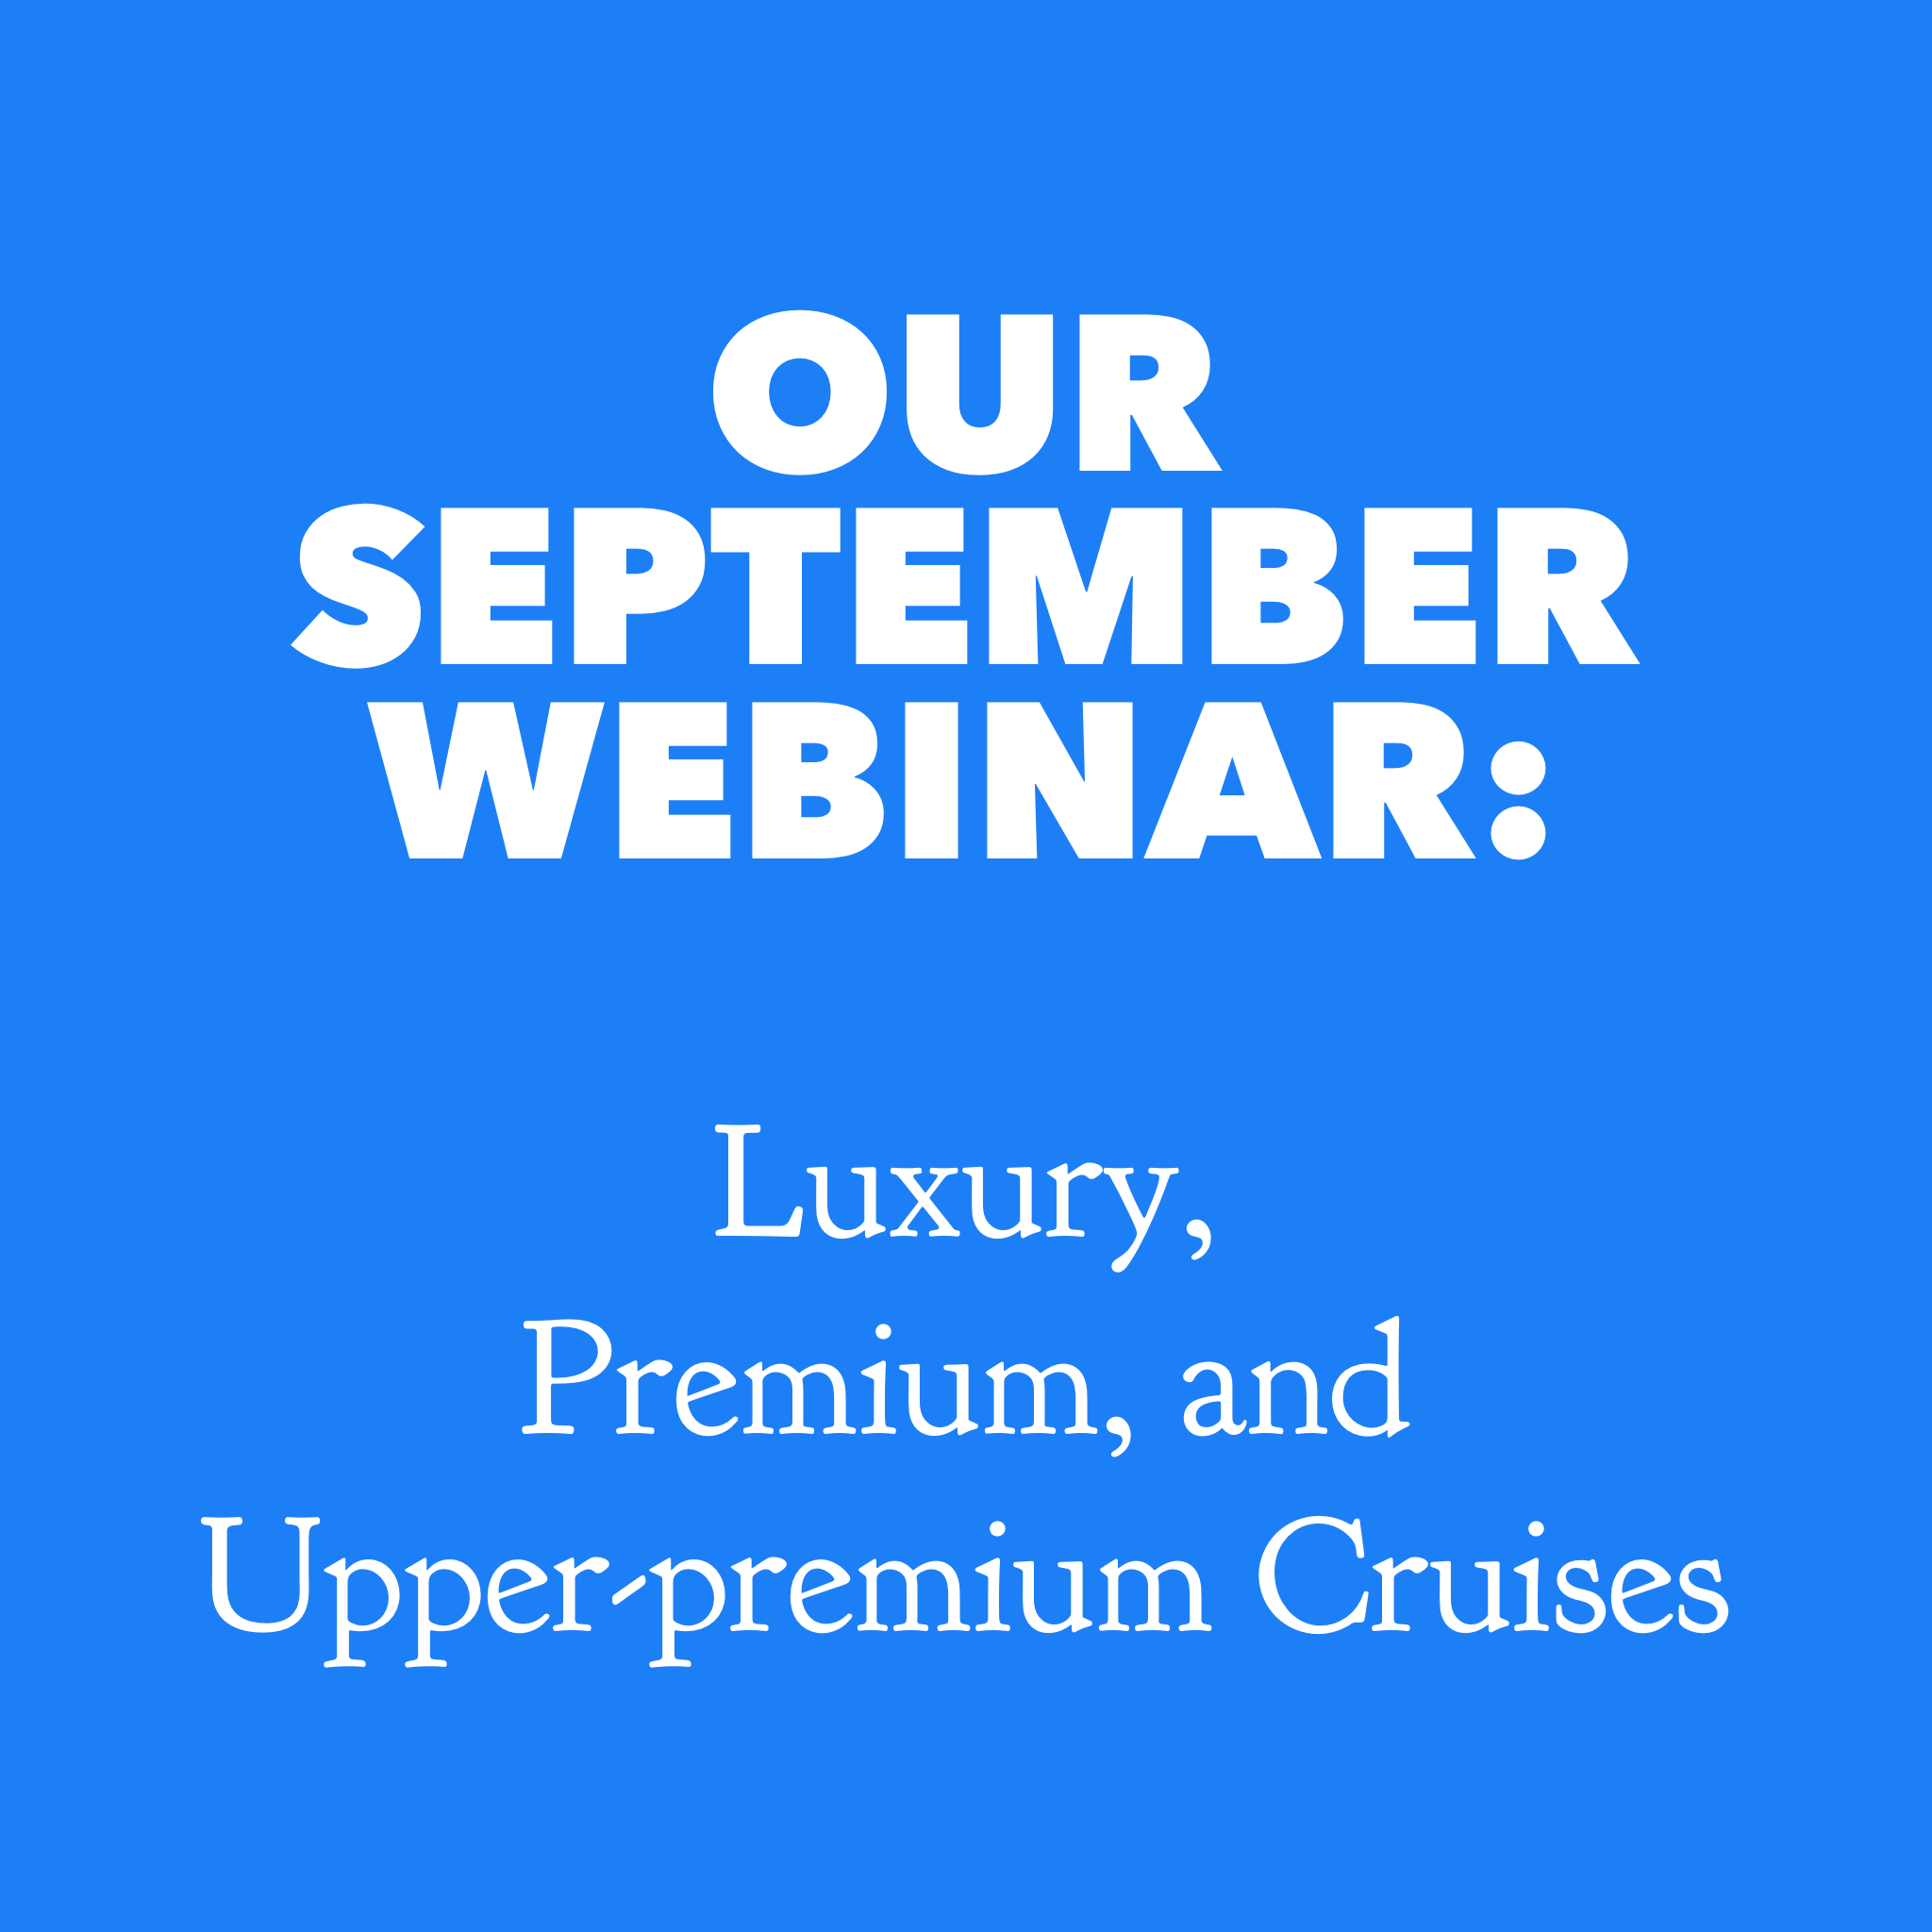 SAVE THE DATE: Our Sept. 11th Webinar